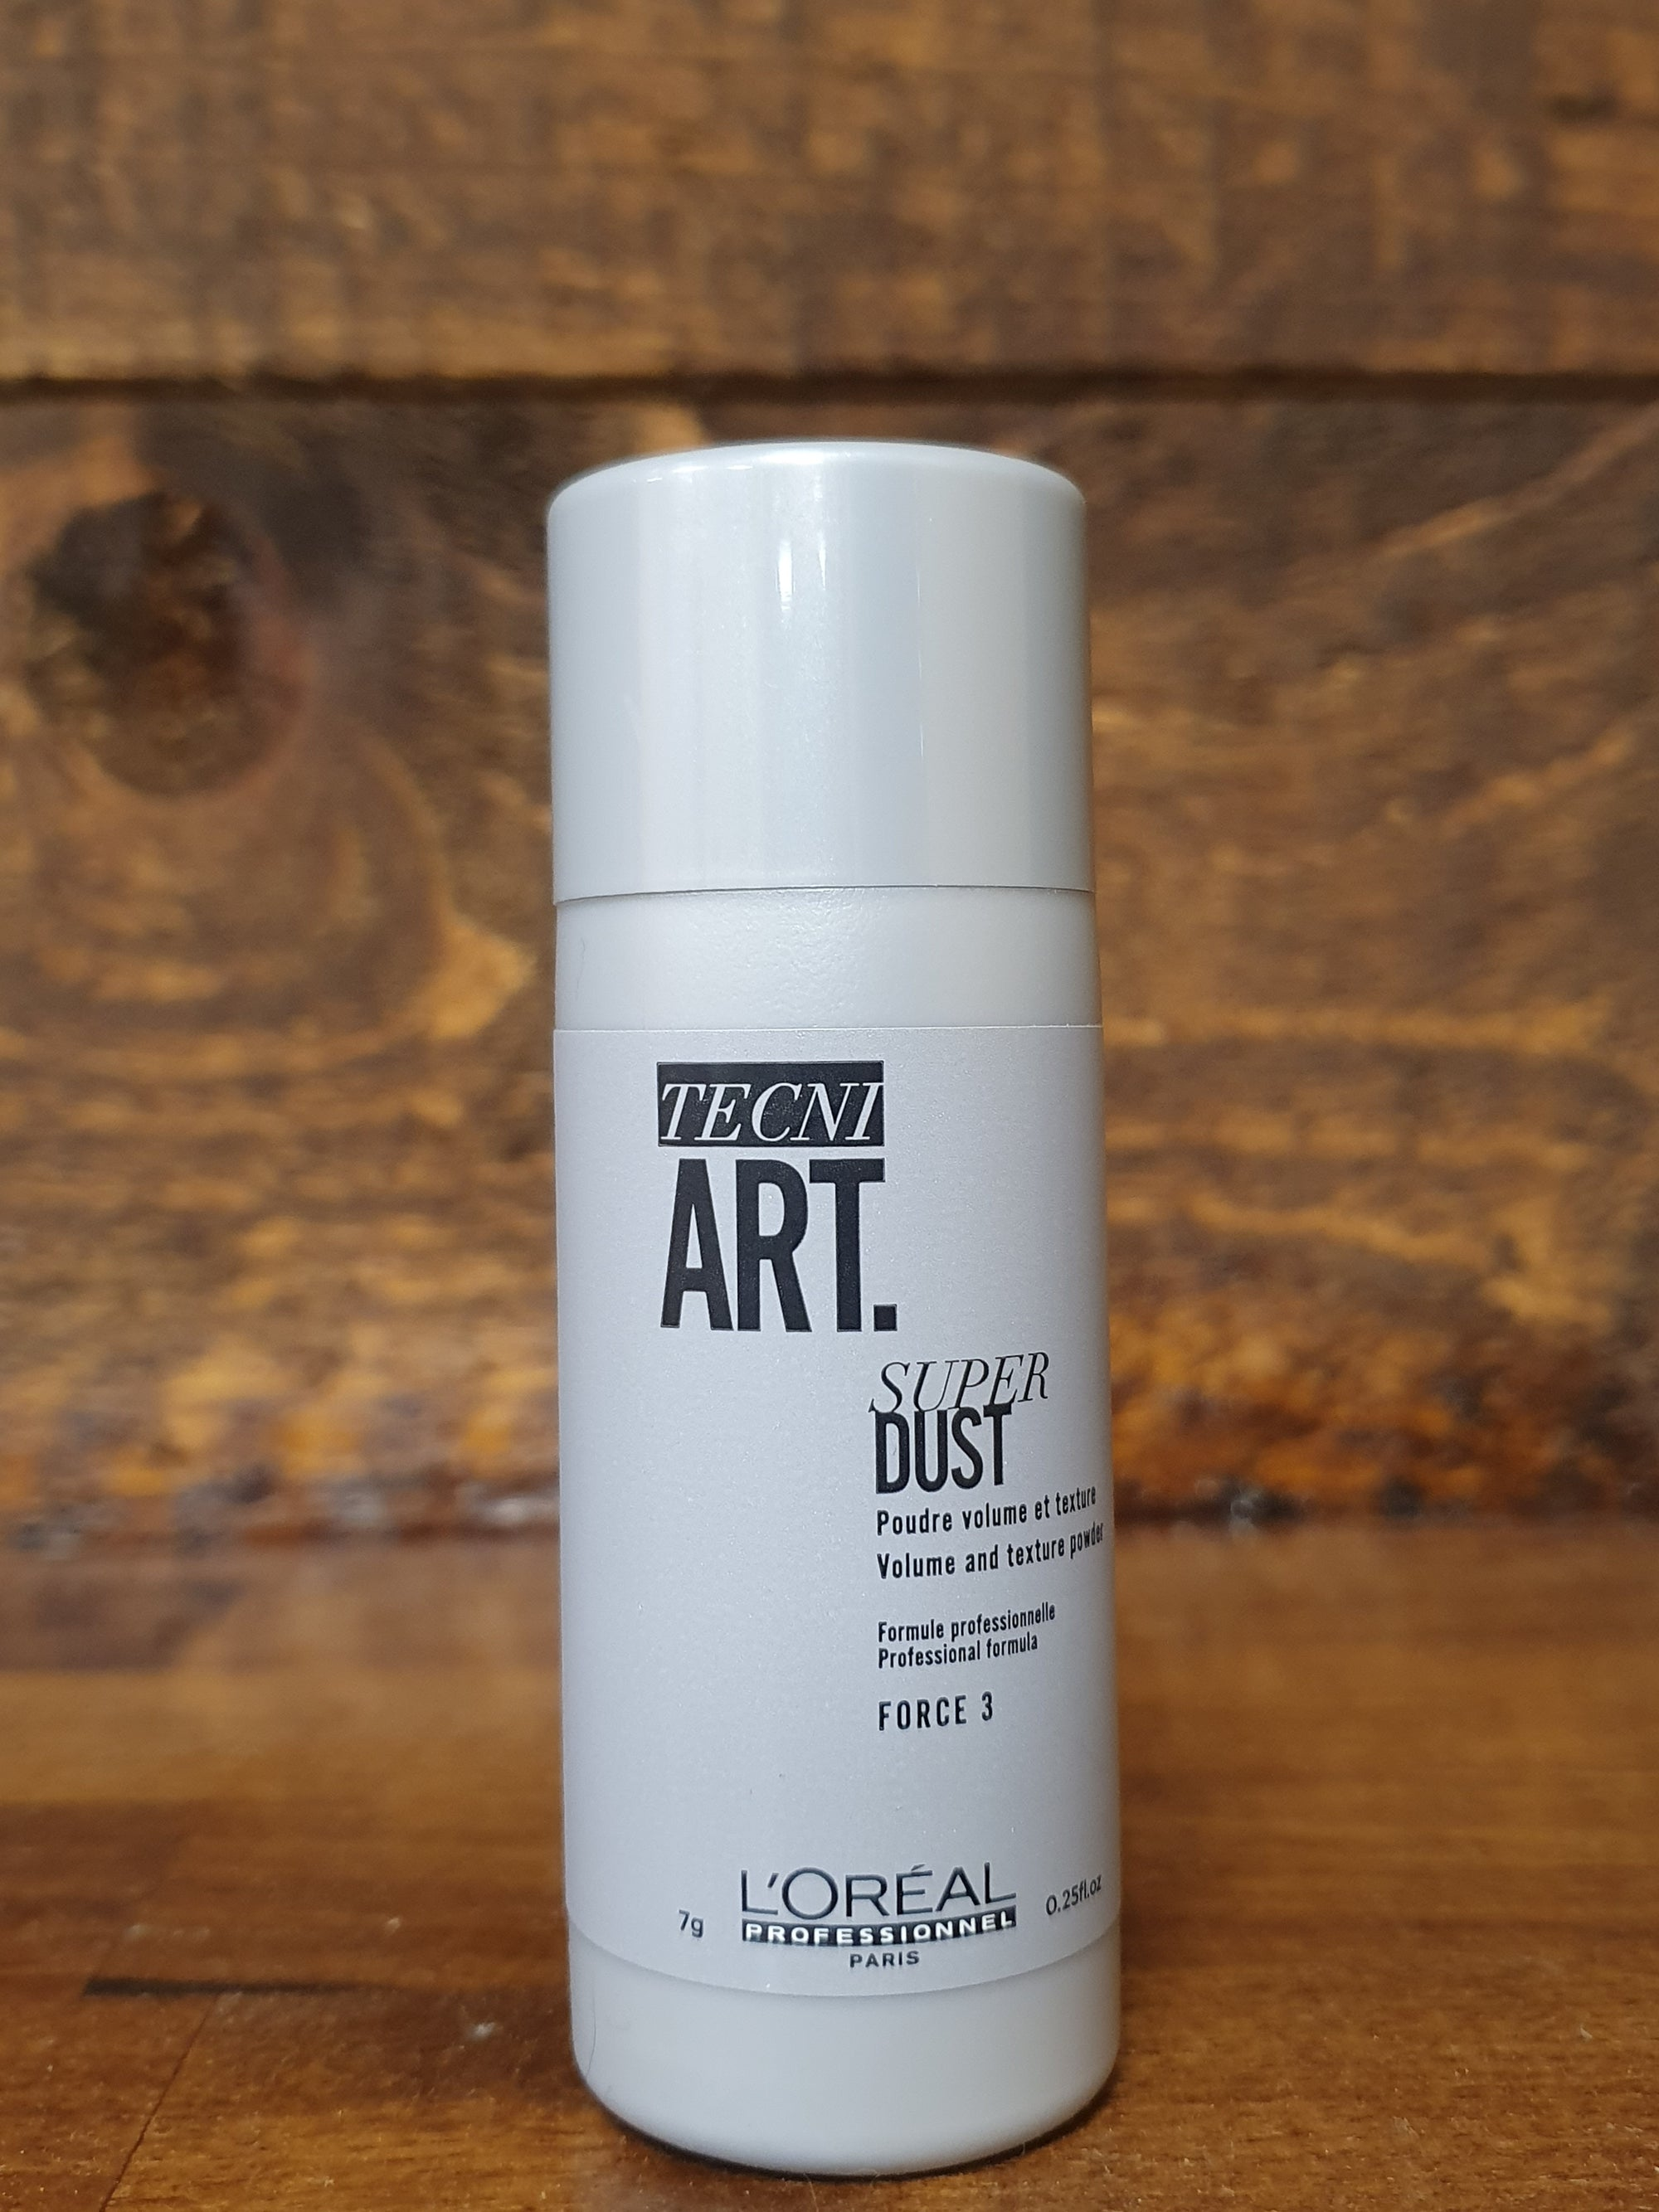 L'Oreal Professionnel Tecni Art Super Dust